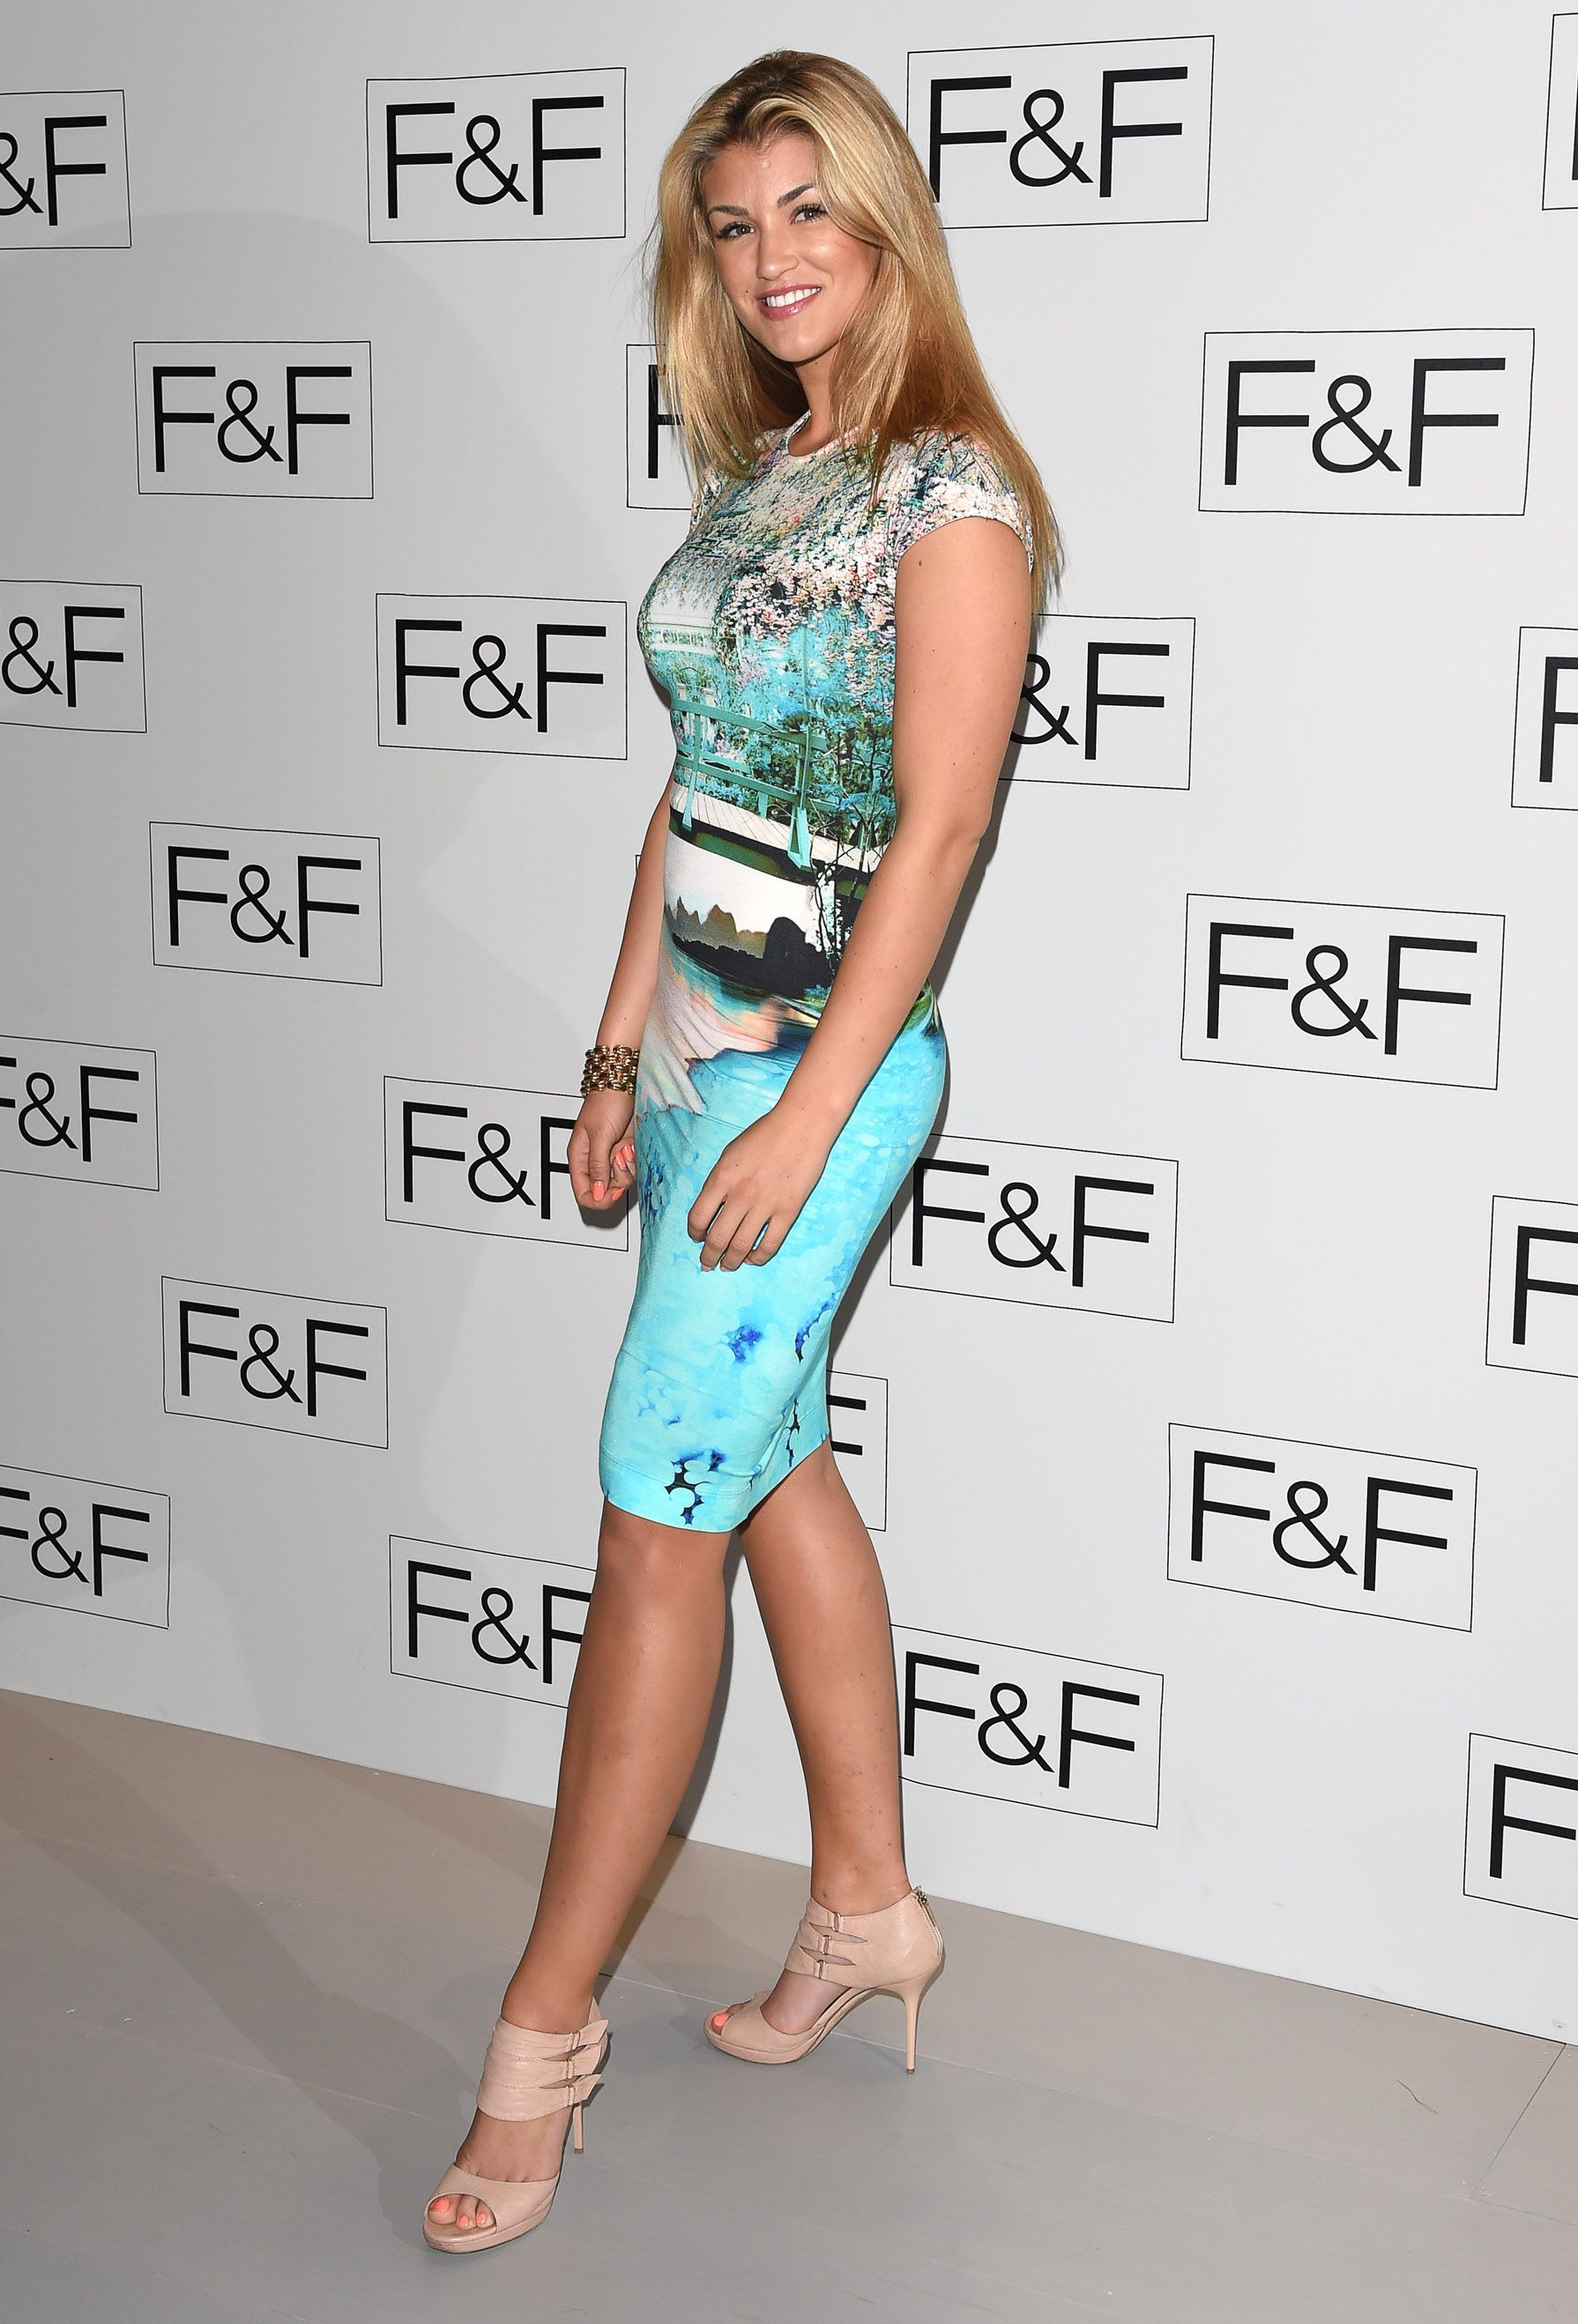 The Toe Cleavage Blog: Under 25 - Amy Willerton (day 3)